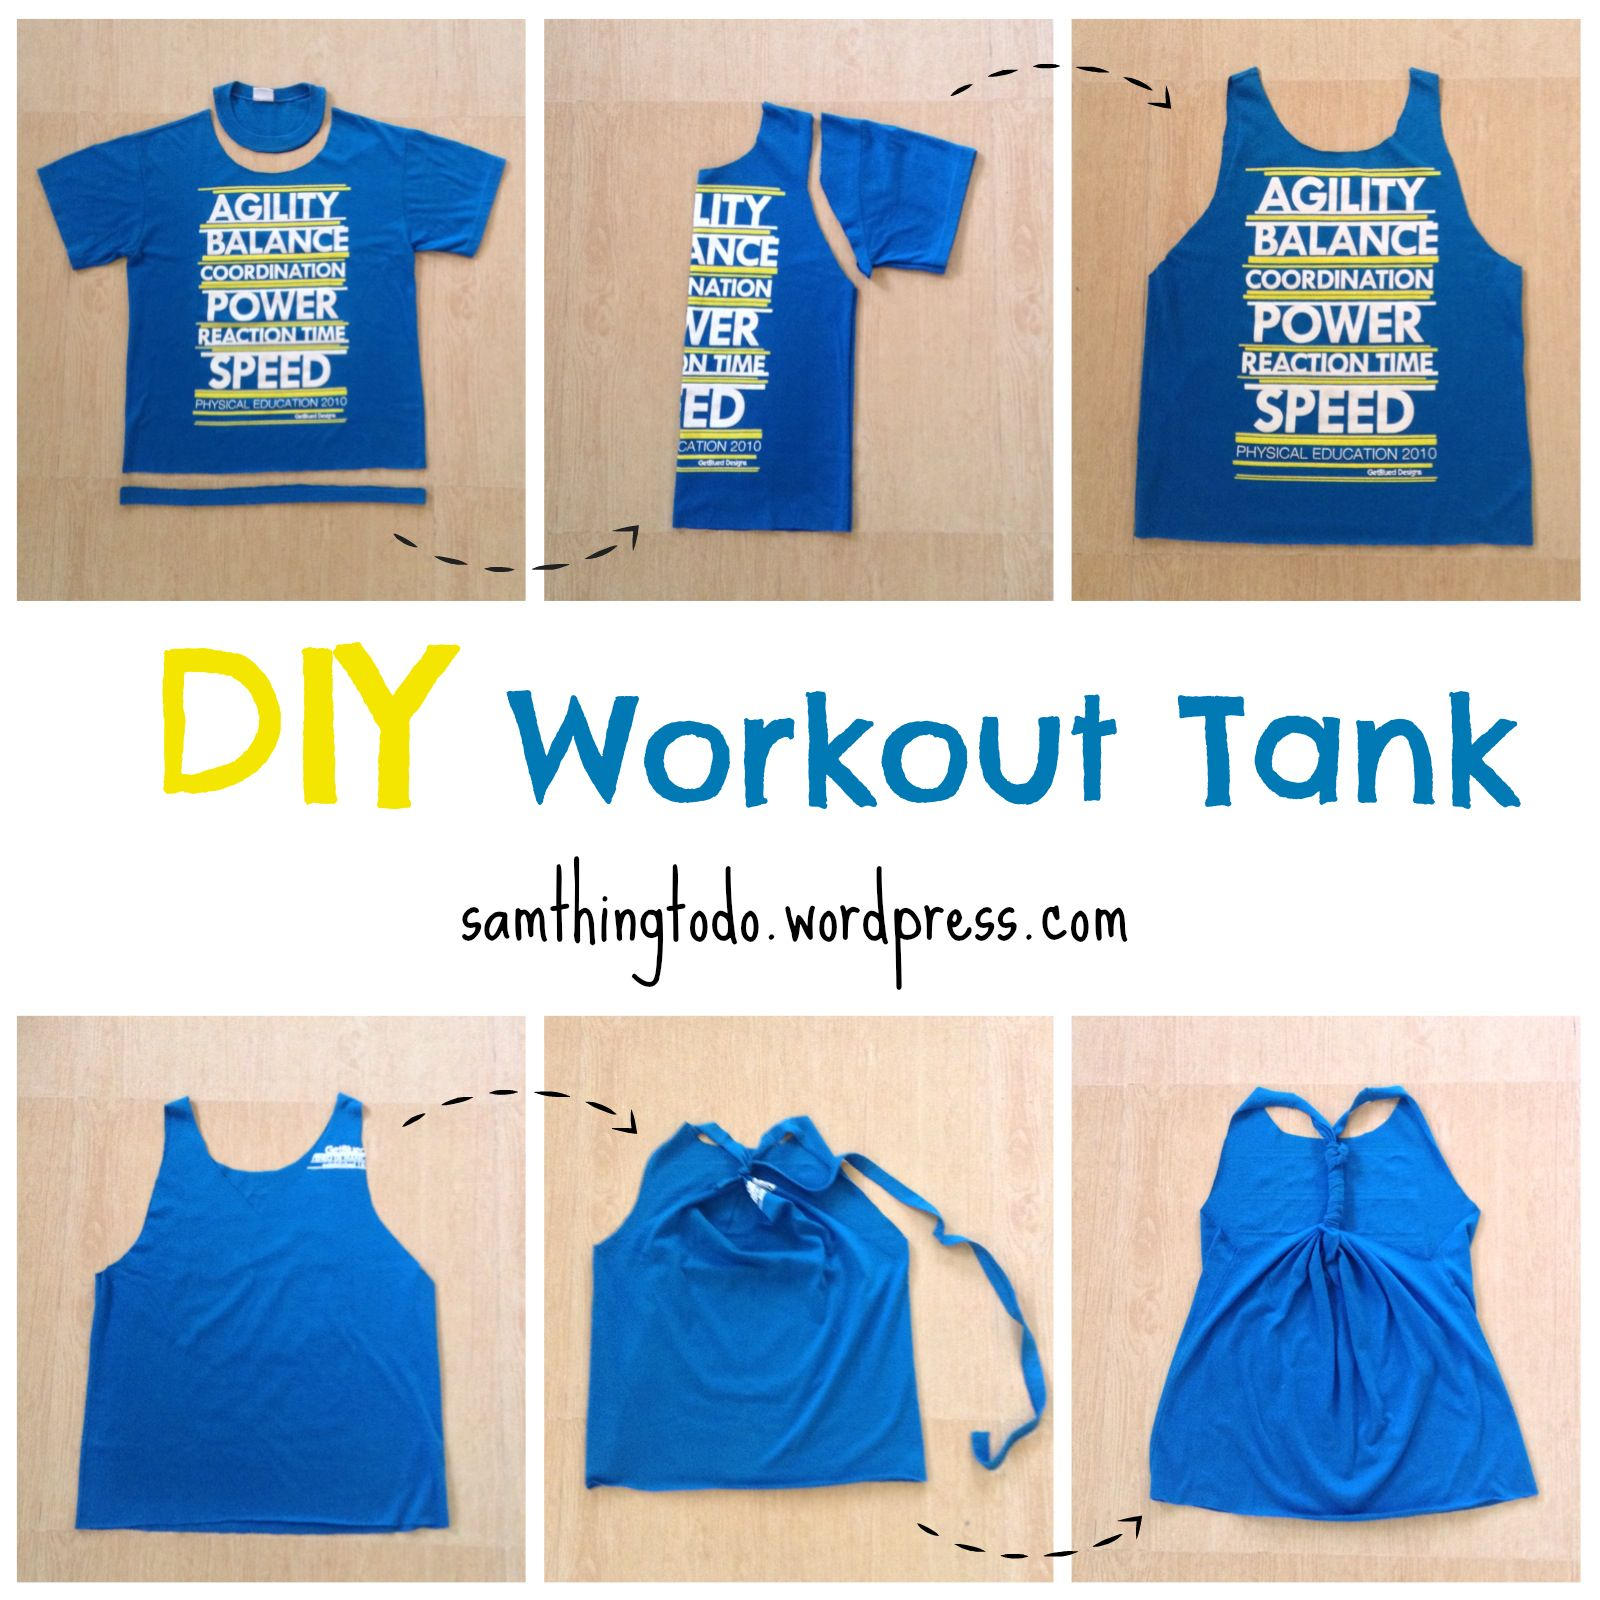 cut your oversized shirts into a diy racerback workout tank top